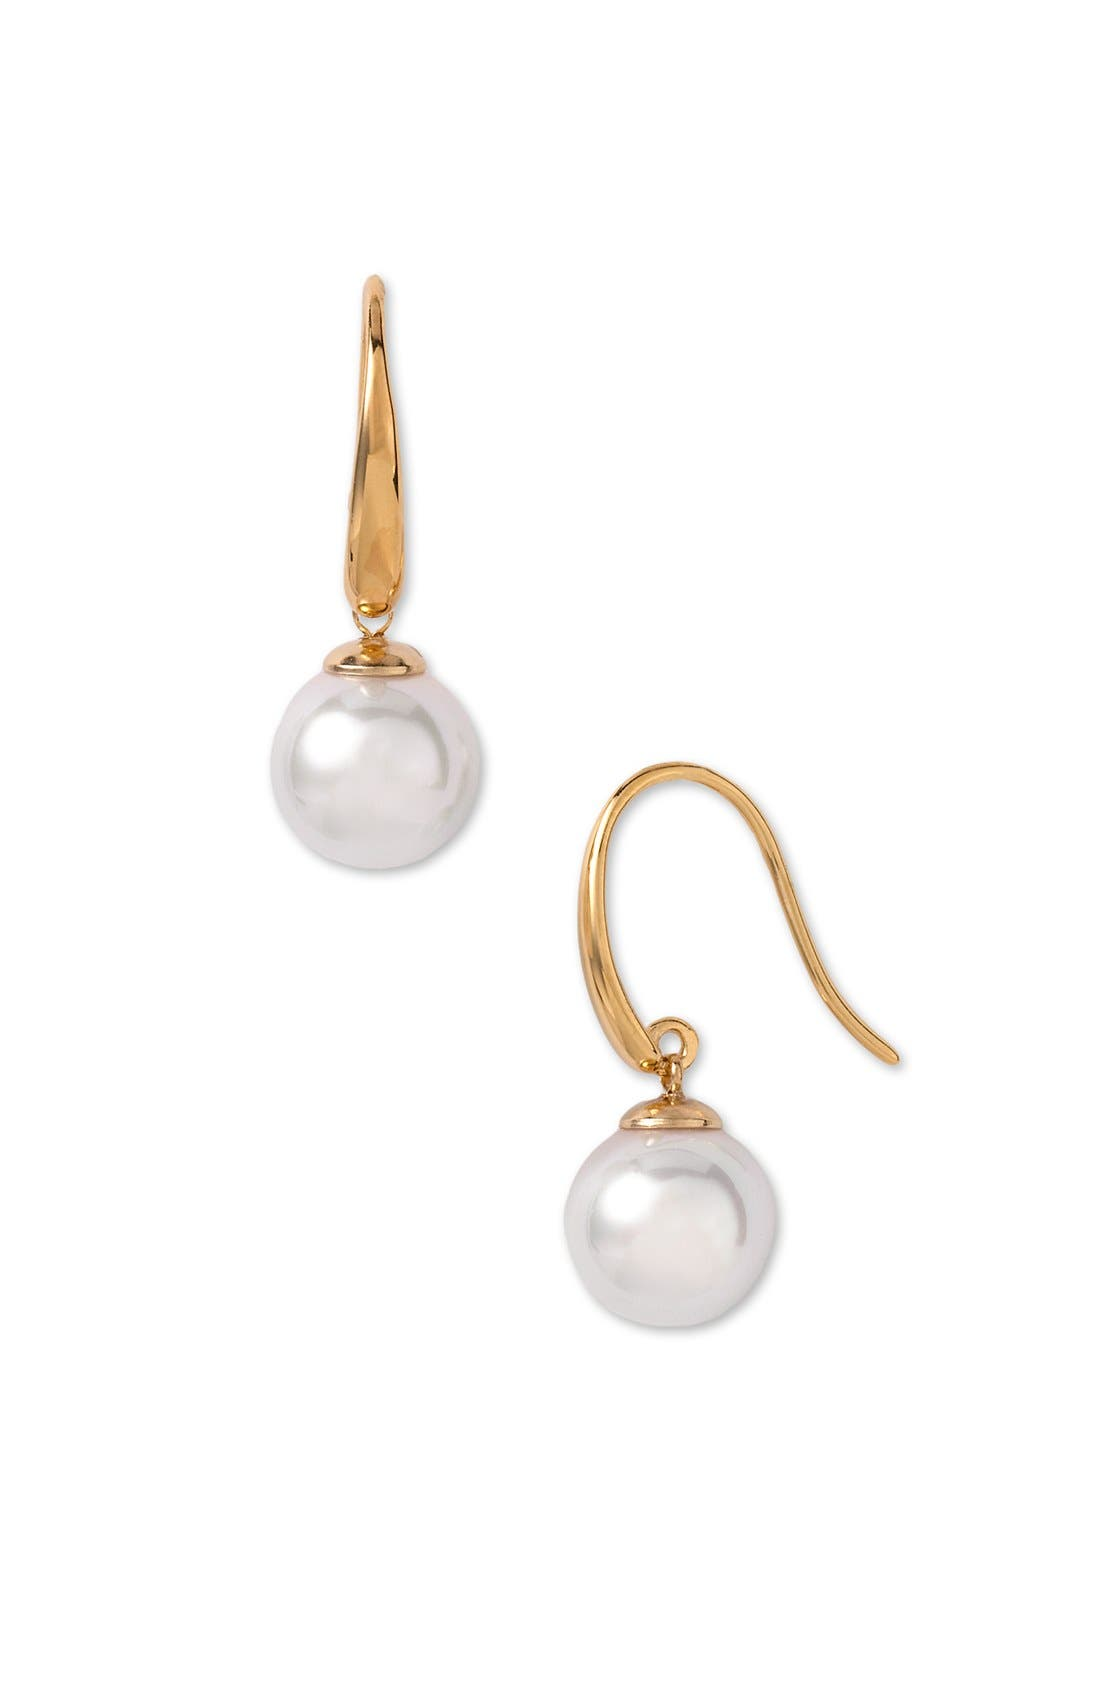 10mm Simulated Pearl Drop Earrings,                         Main,                         color, White/ Gold